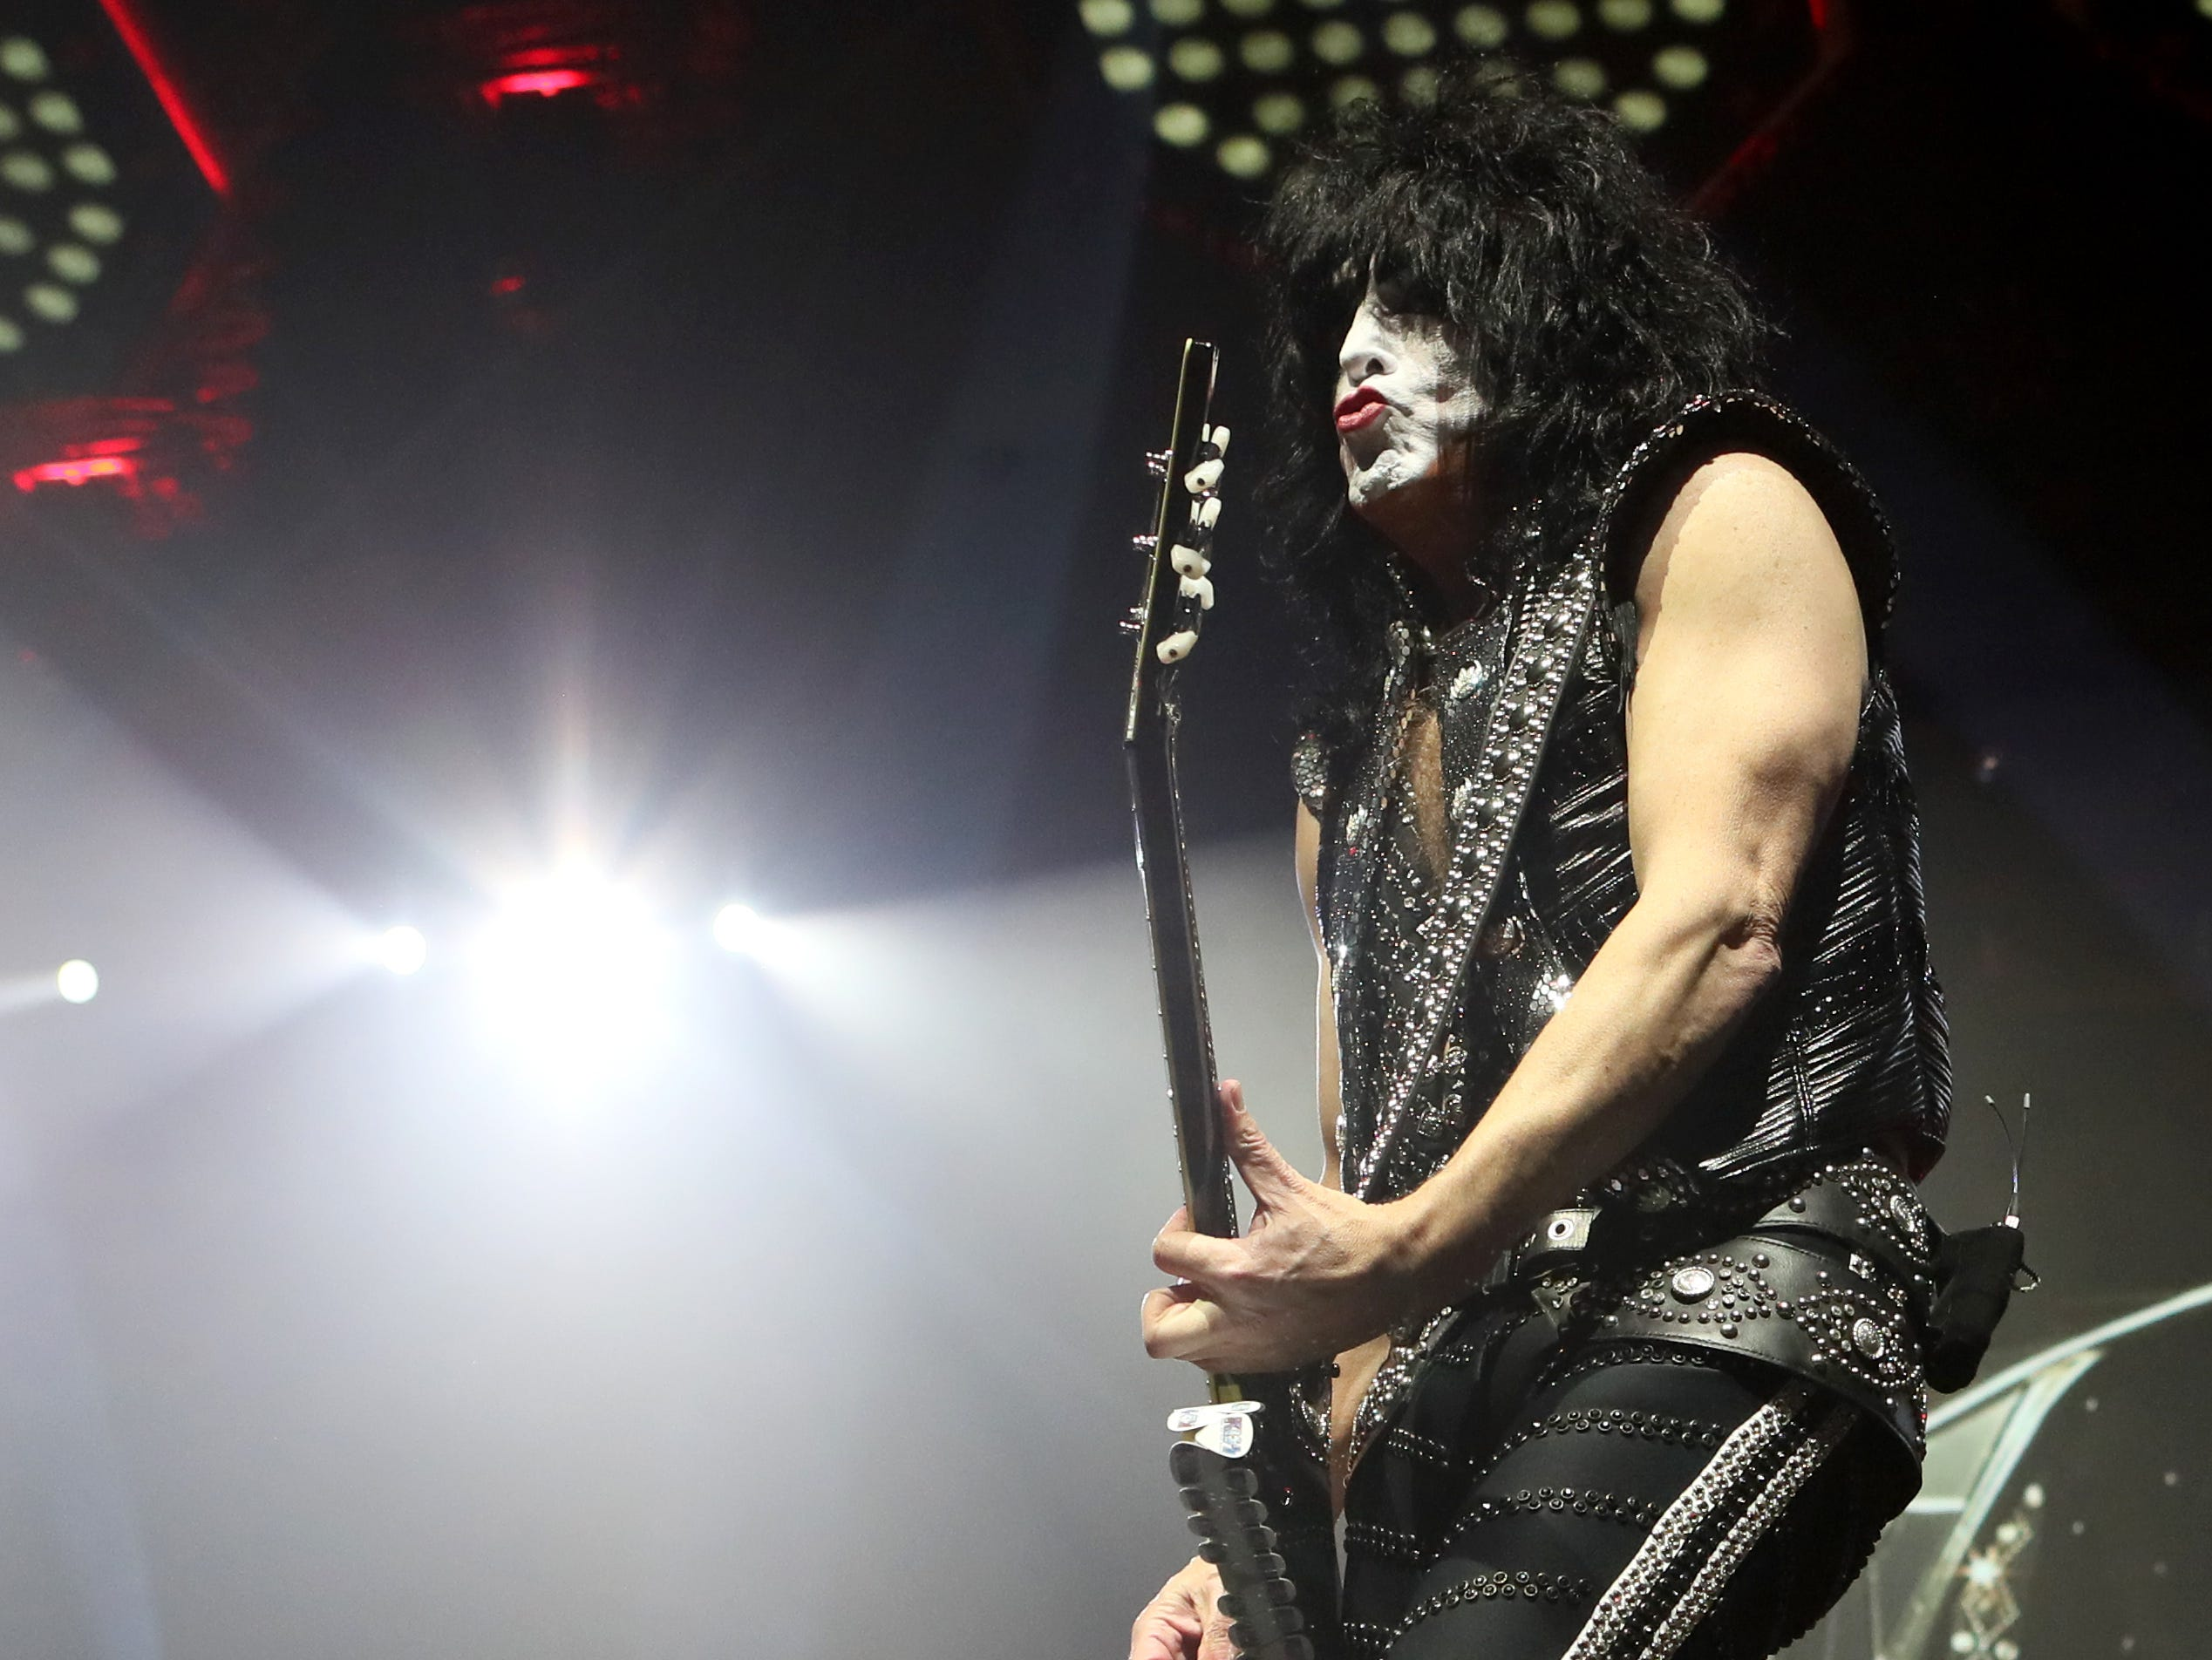 KISS performs their End of the Road World Tour at the FedExForum on Saturday, Feb. 23, 2019.